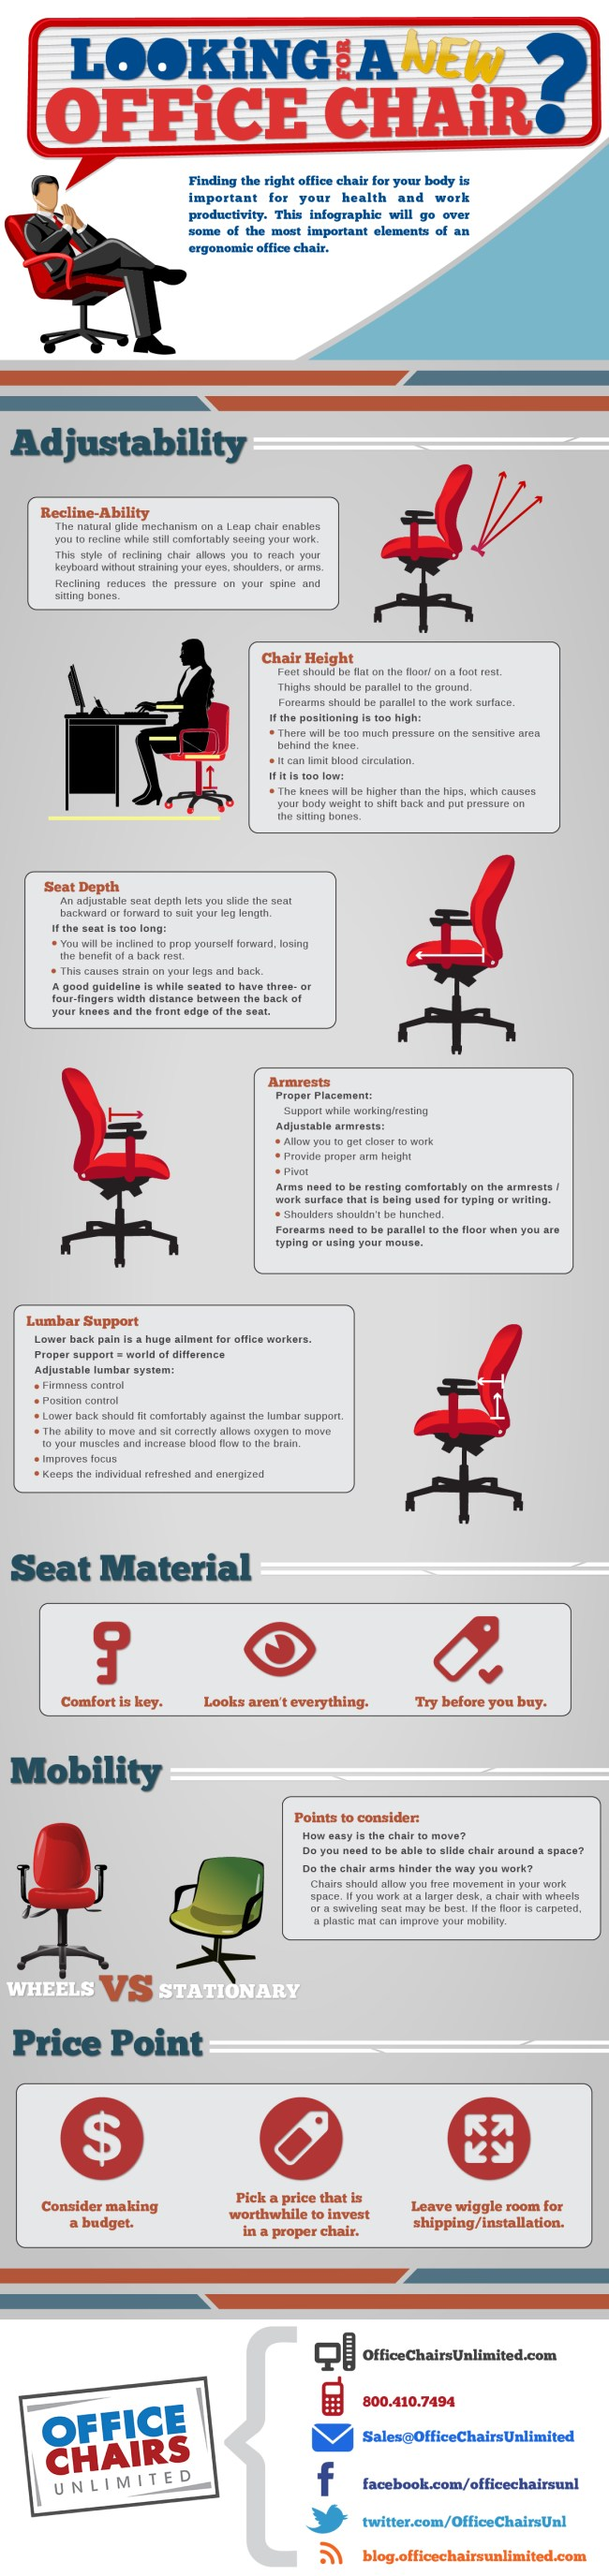 how to find a new office chair